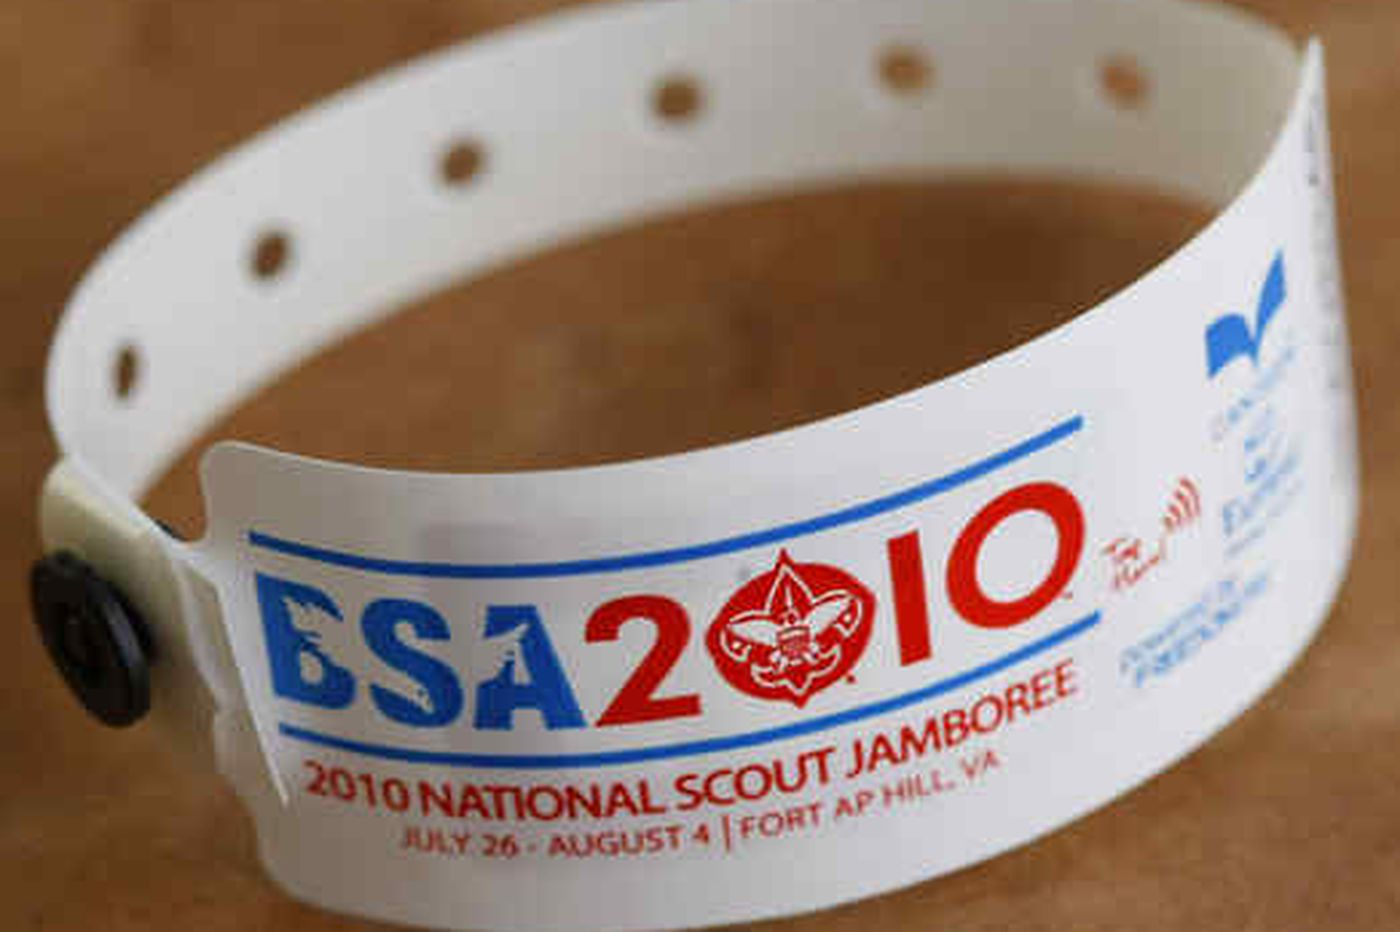 PhillyInc: Boy Scouts to test electronic payment system